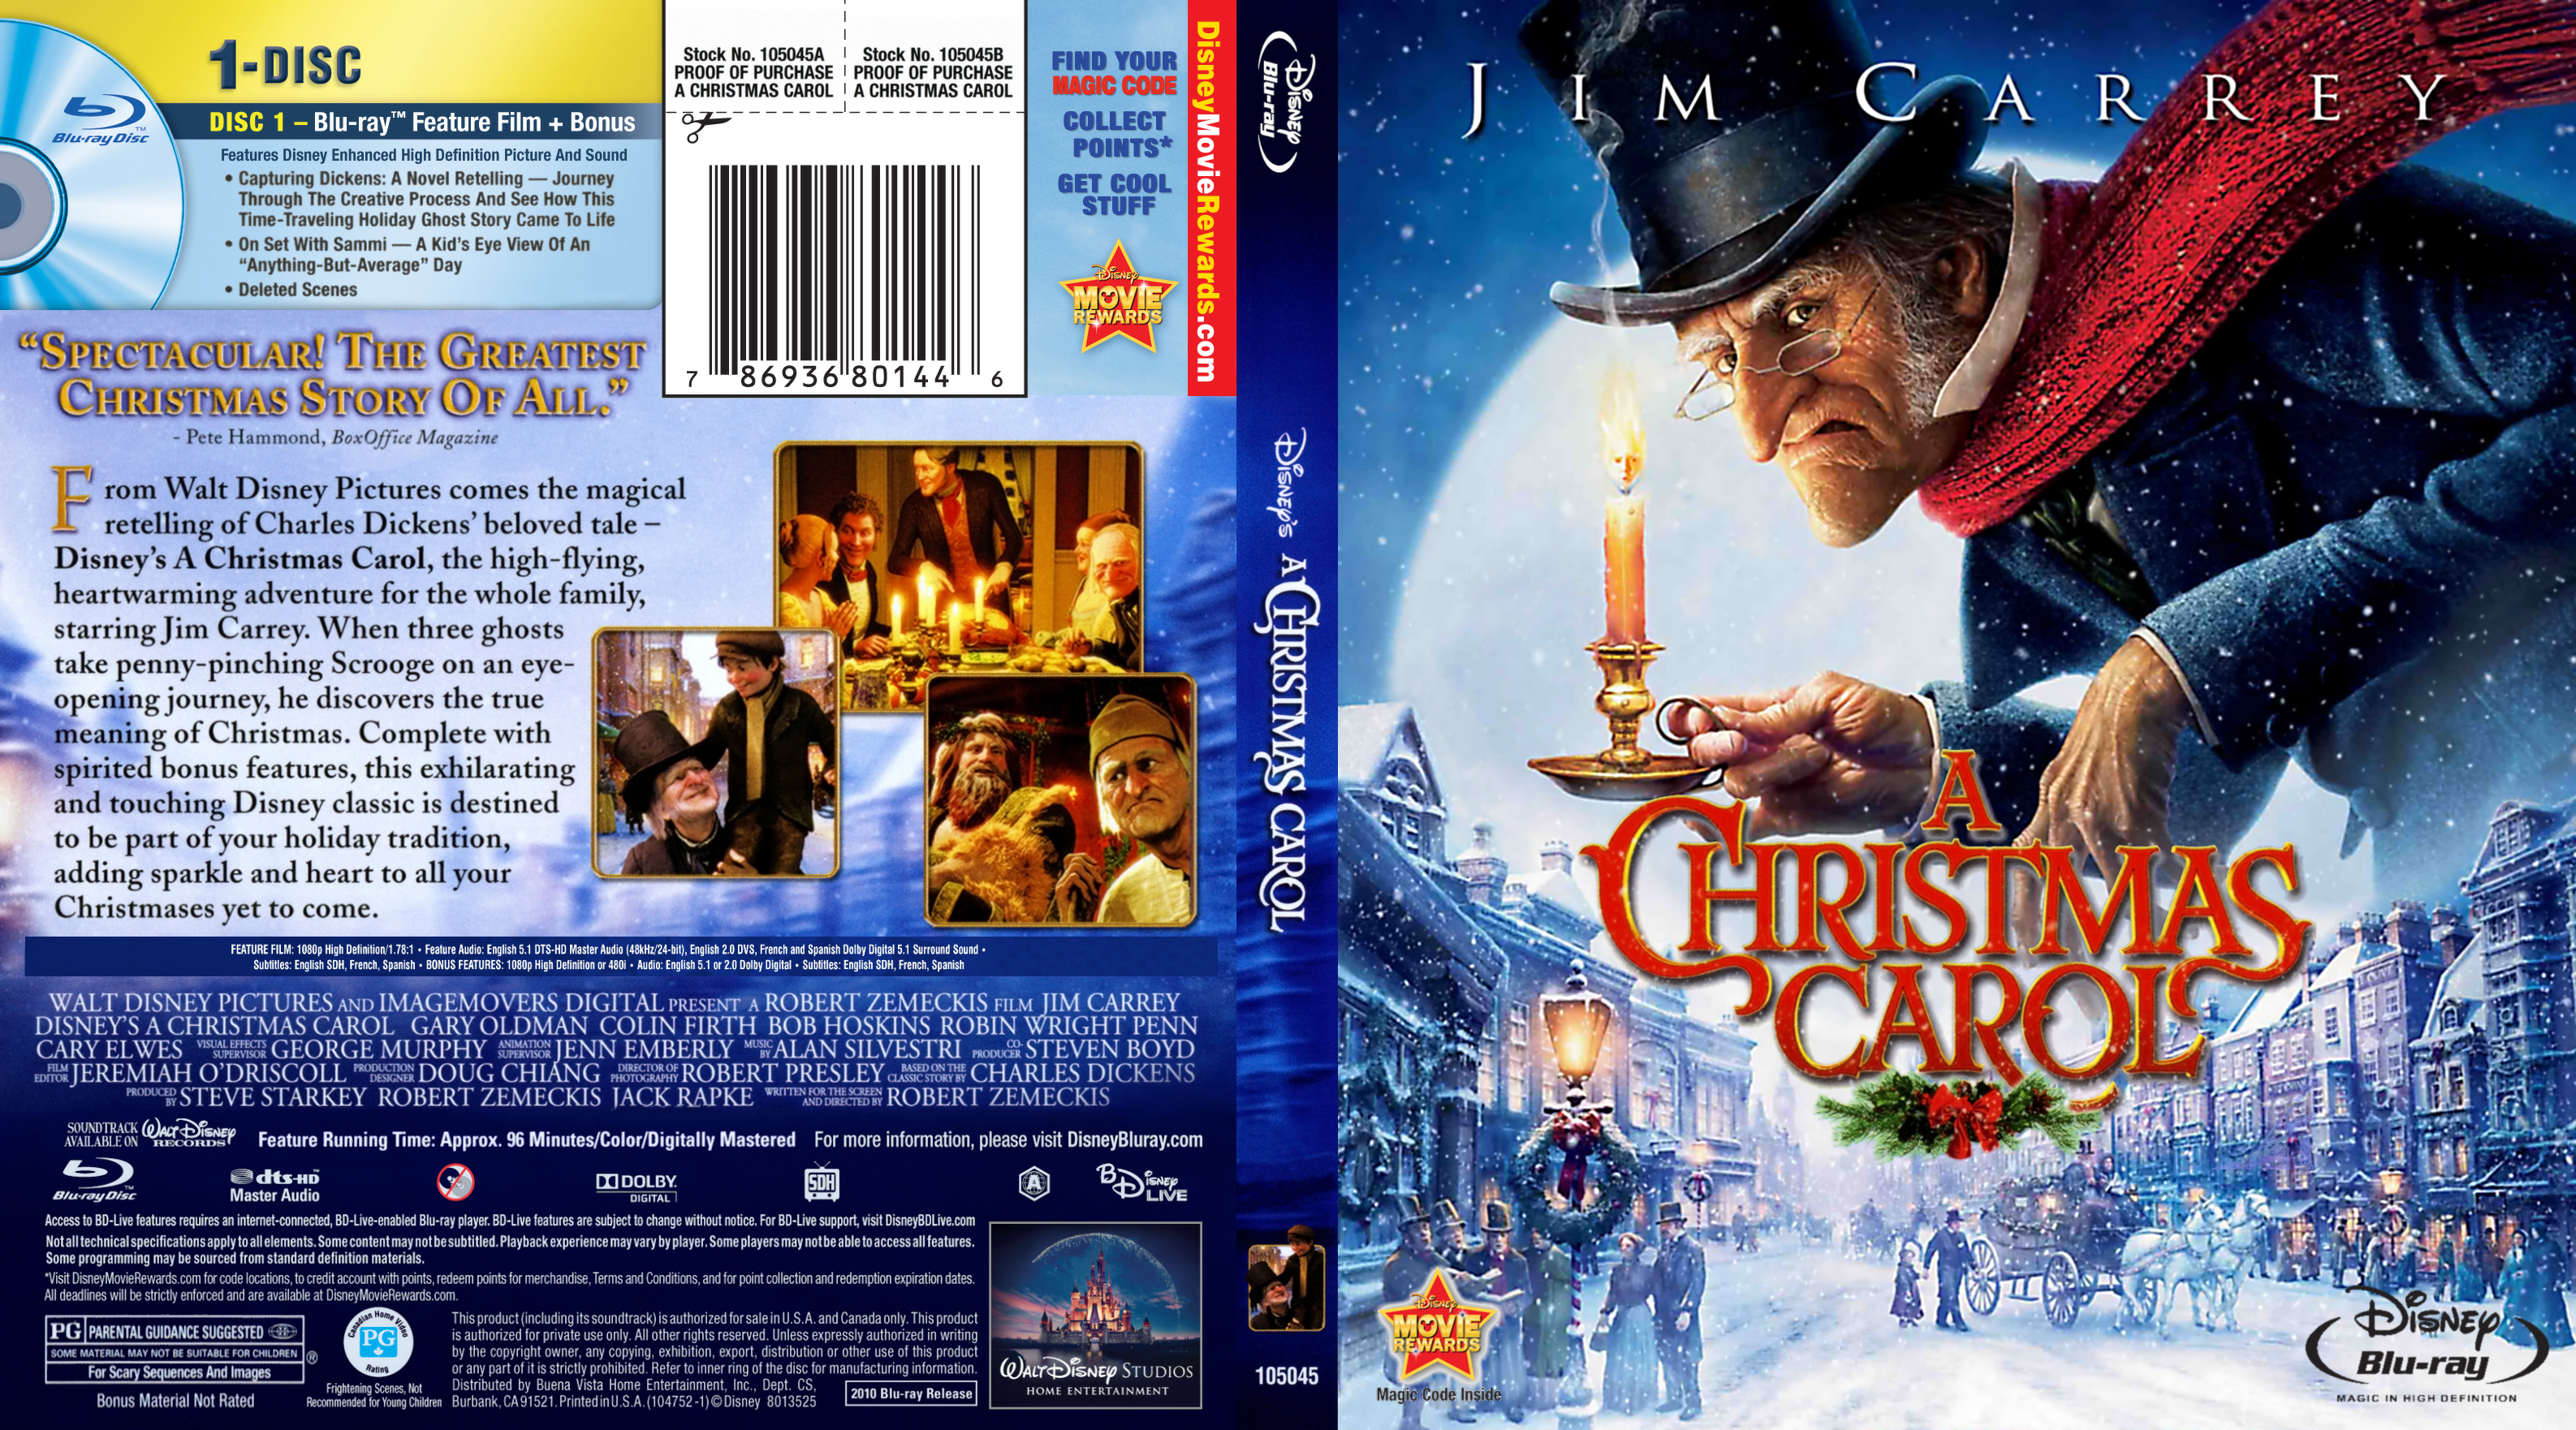 A Christmas Carol 2009 Br Blu Ray Covers Cover Century Over 500 000 Album Art Covers For Free